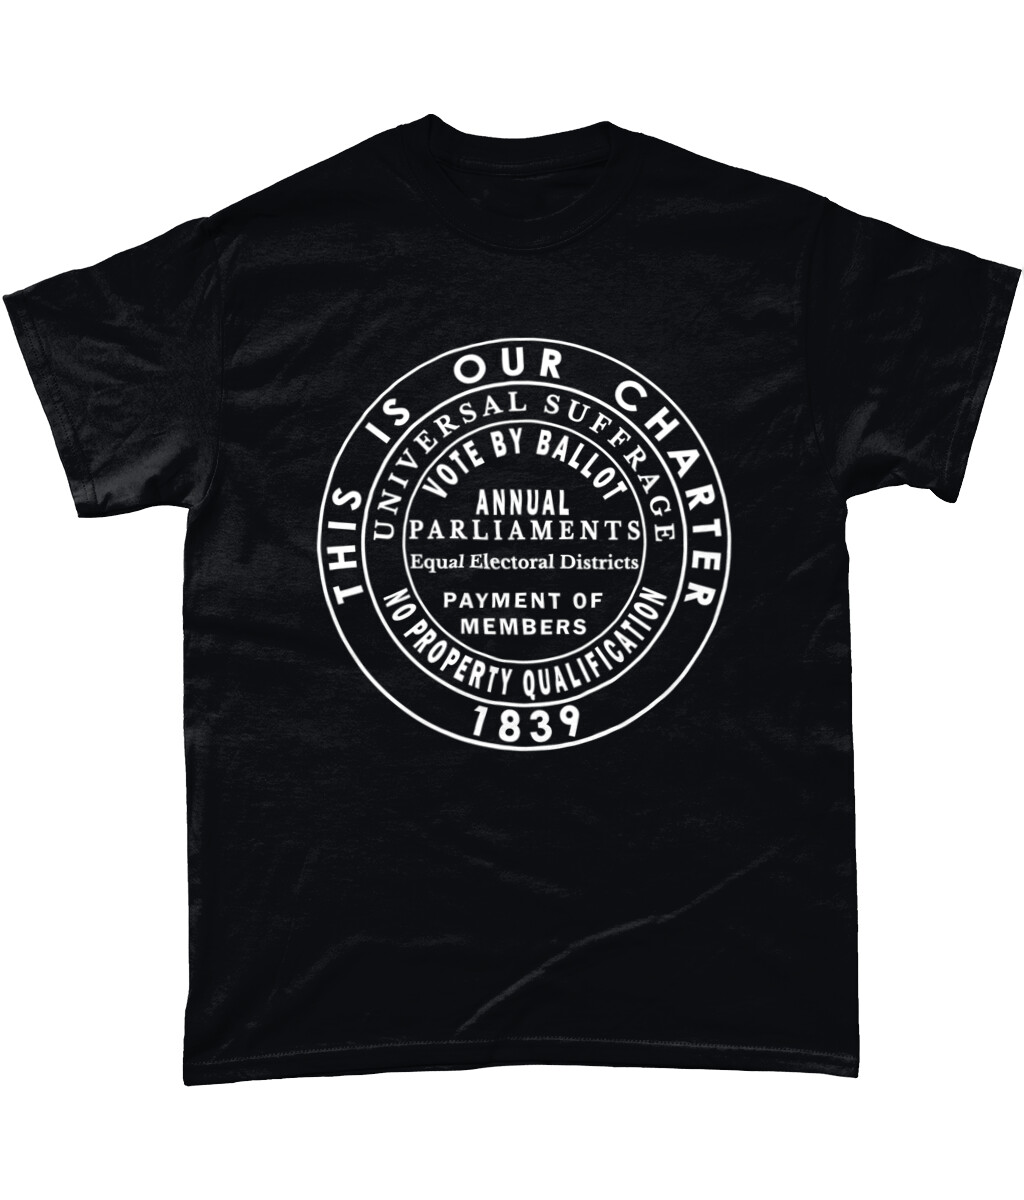 Black tee | Unisex | Six Points of the Charter 1839